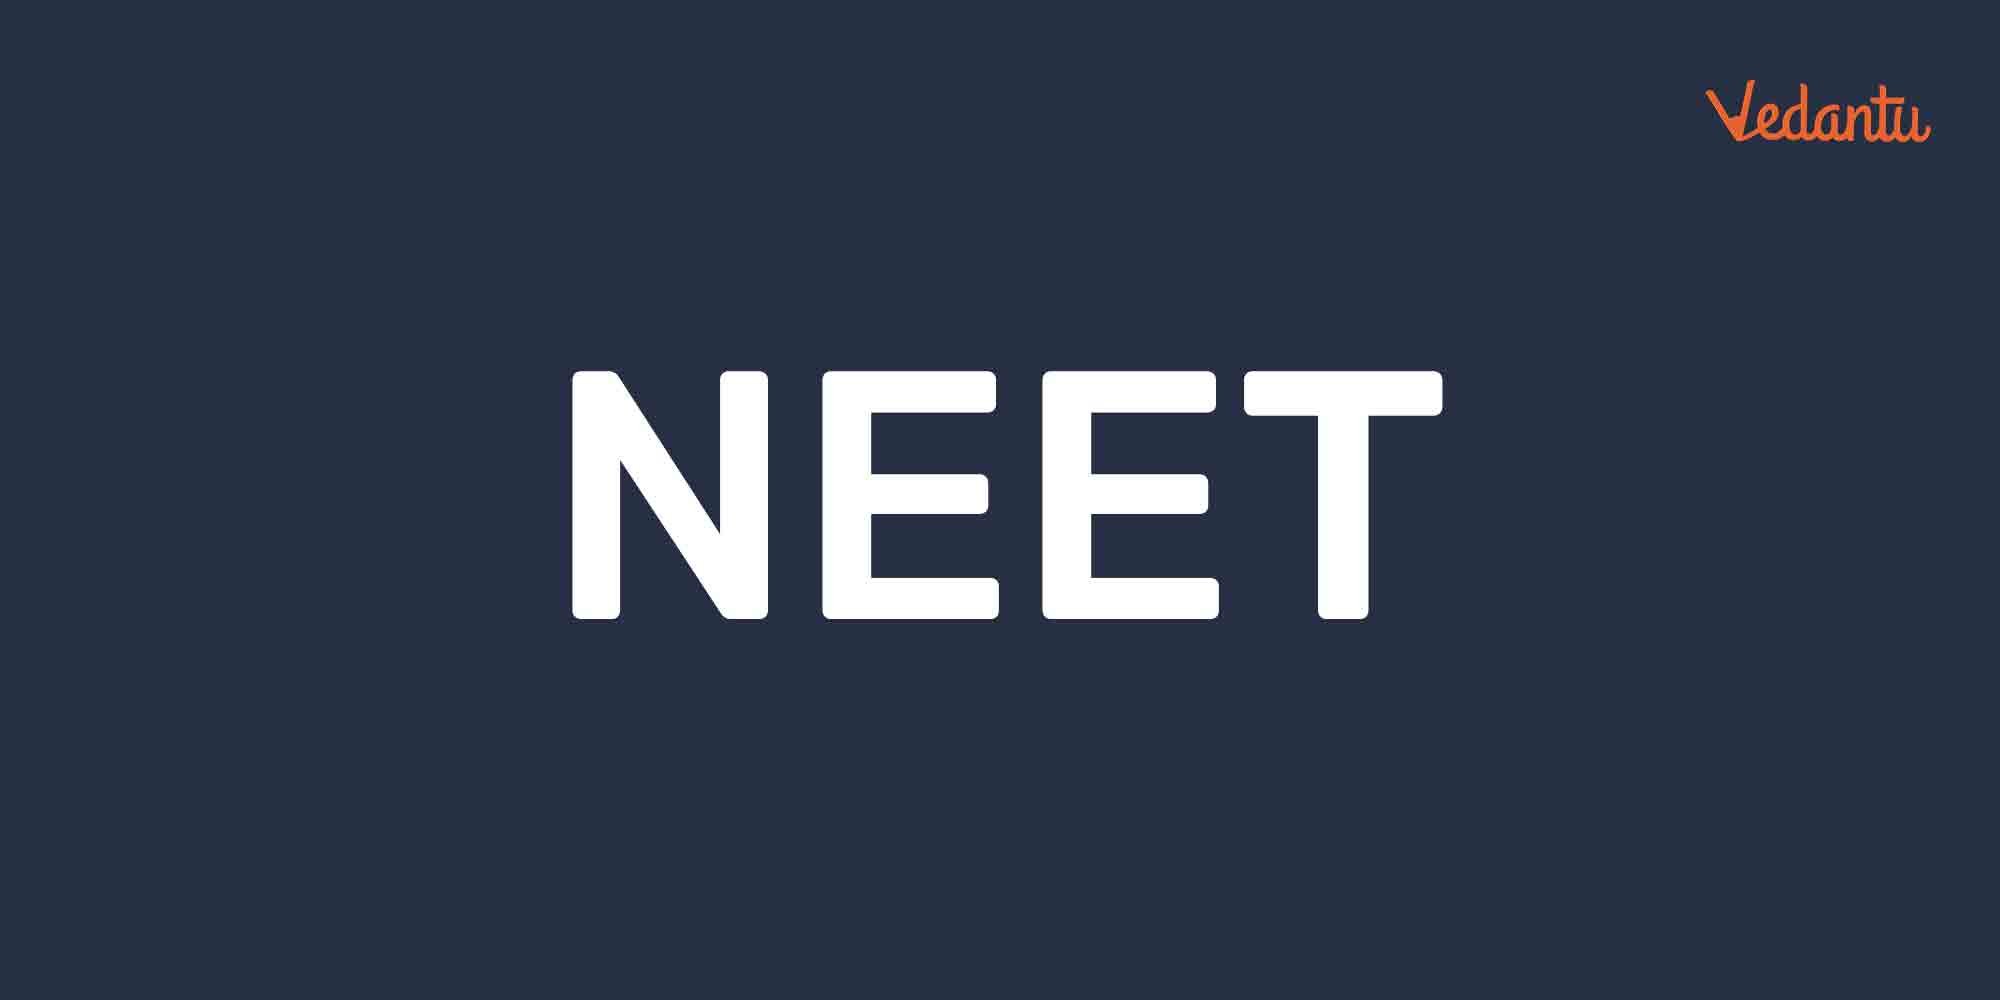 How to Prepare NEET and Board at the Same Time